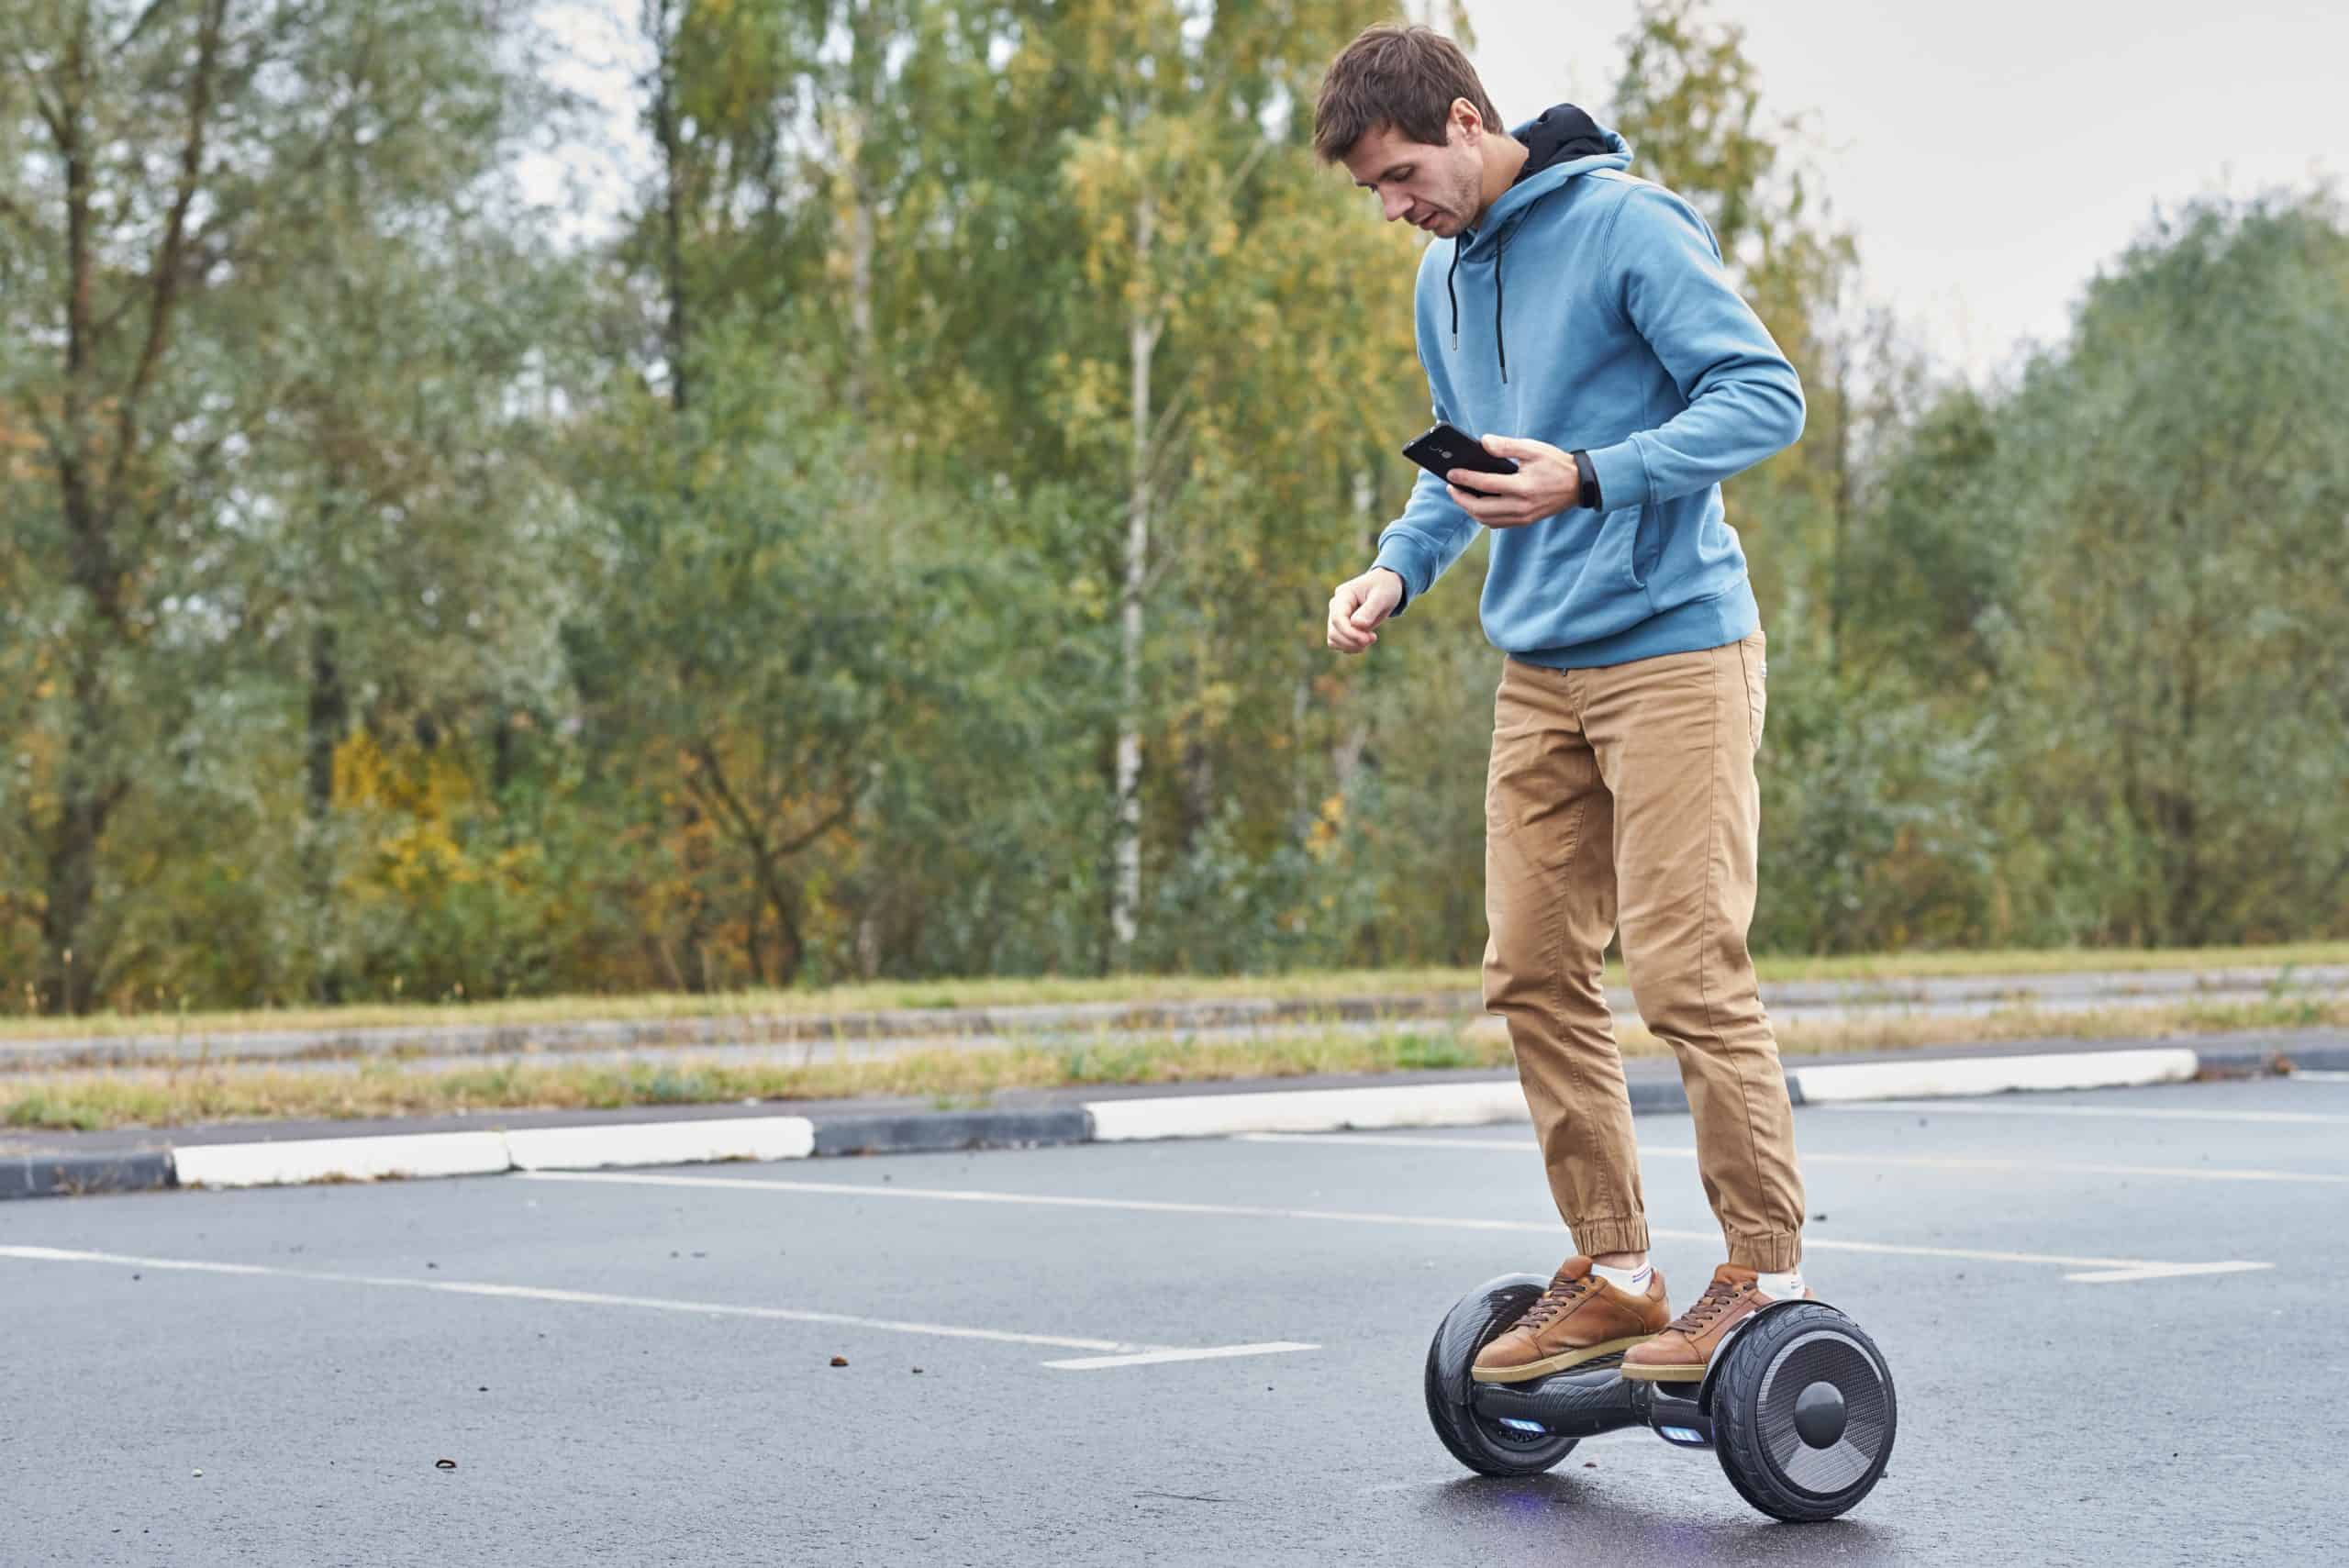 How long does it take to charge a hoverboard? 10